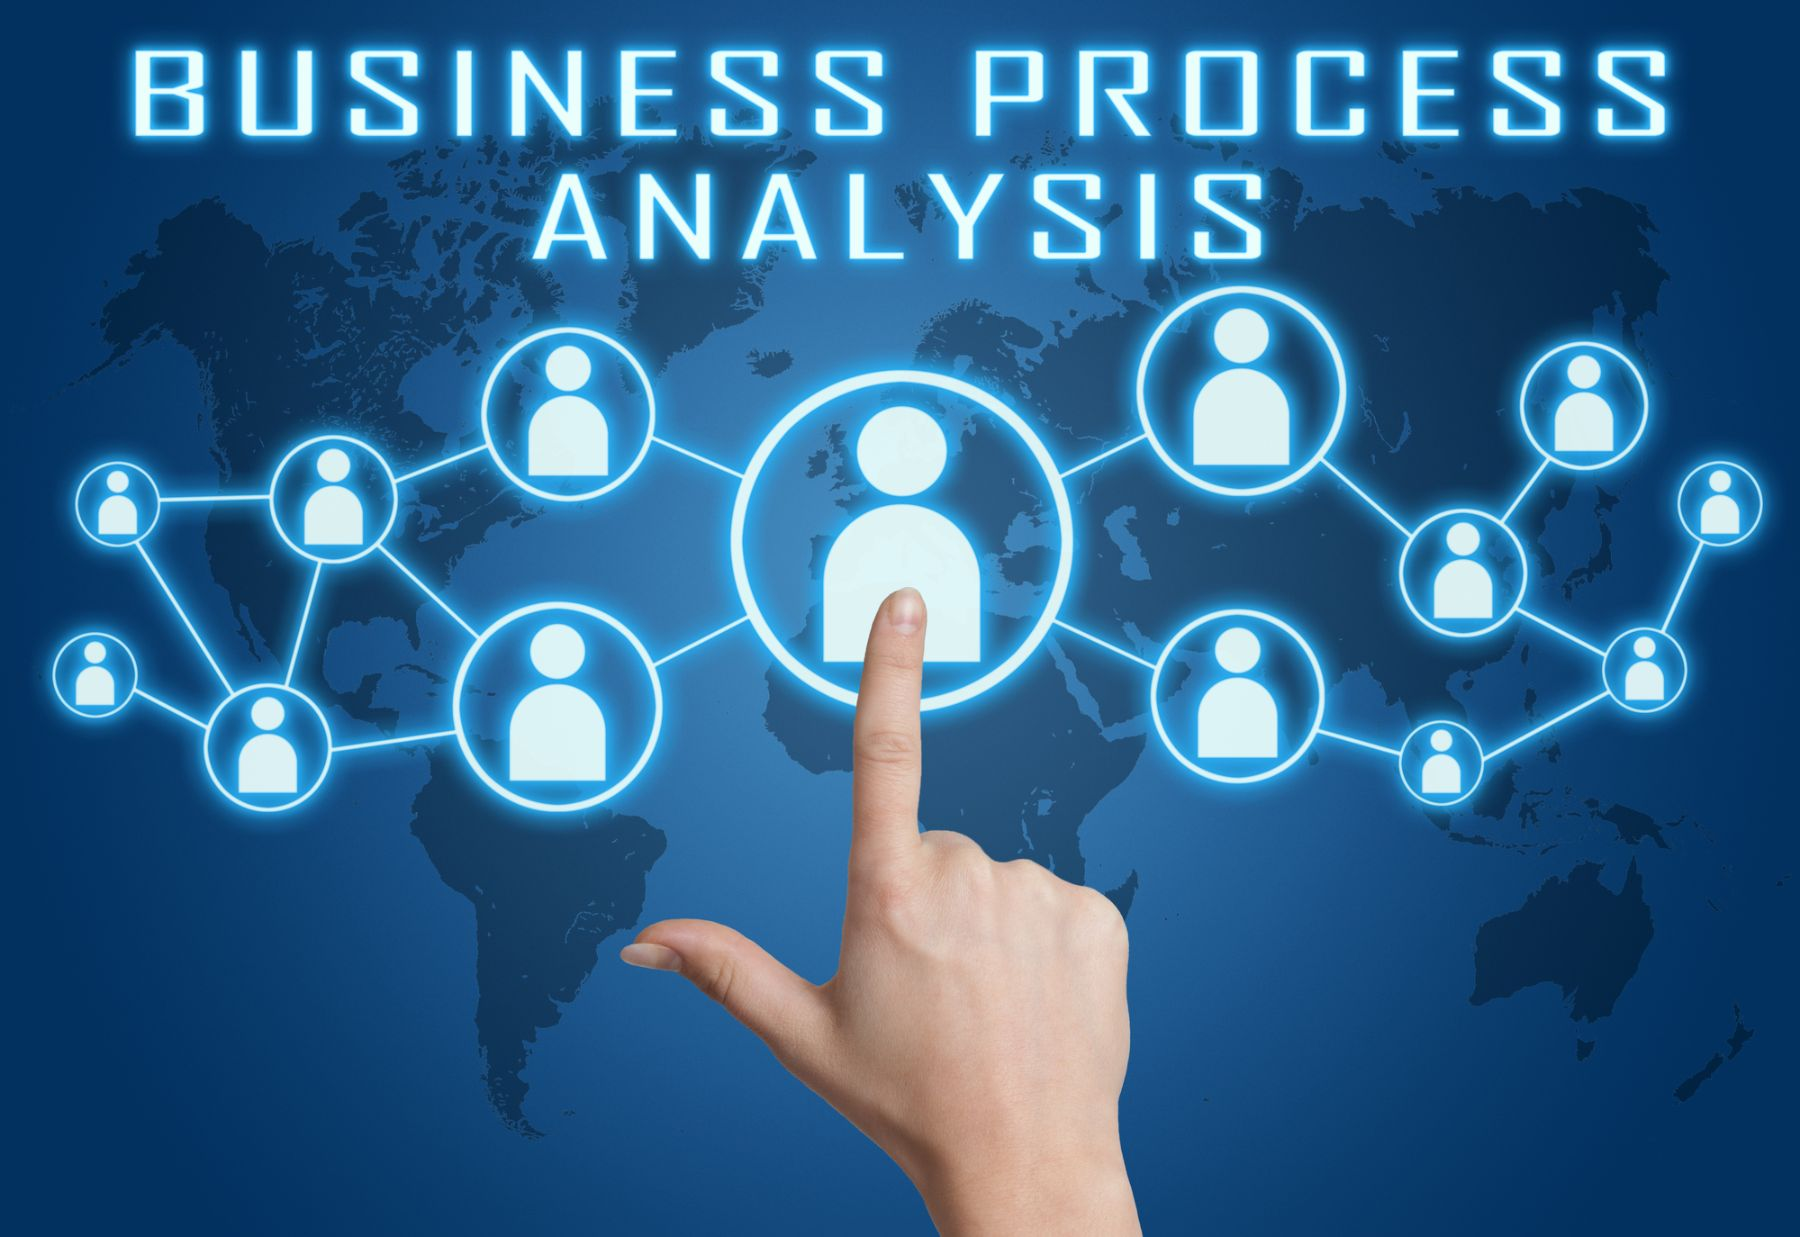 Finger pointing to icon on Business Process Analysis